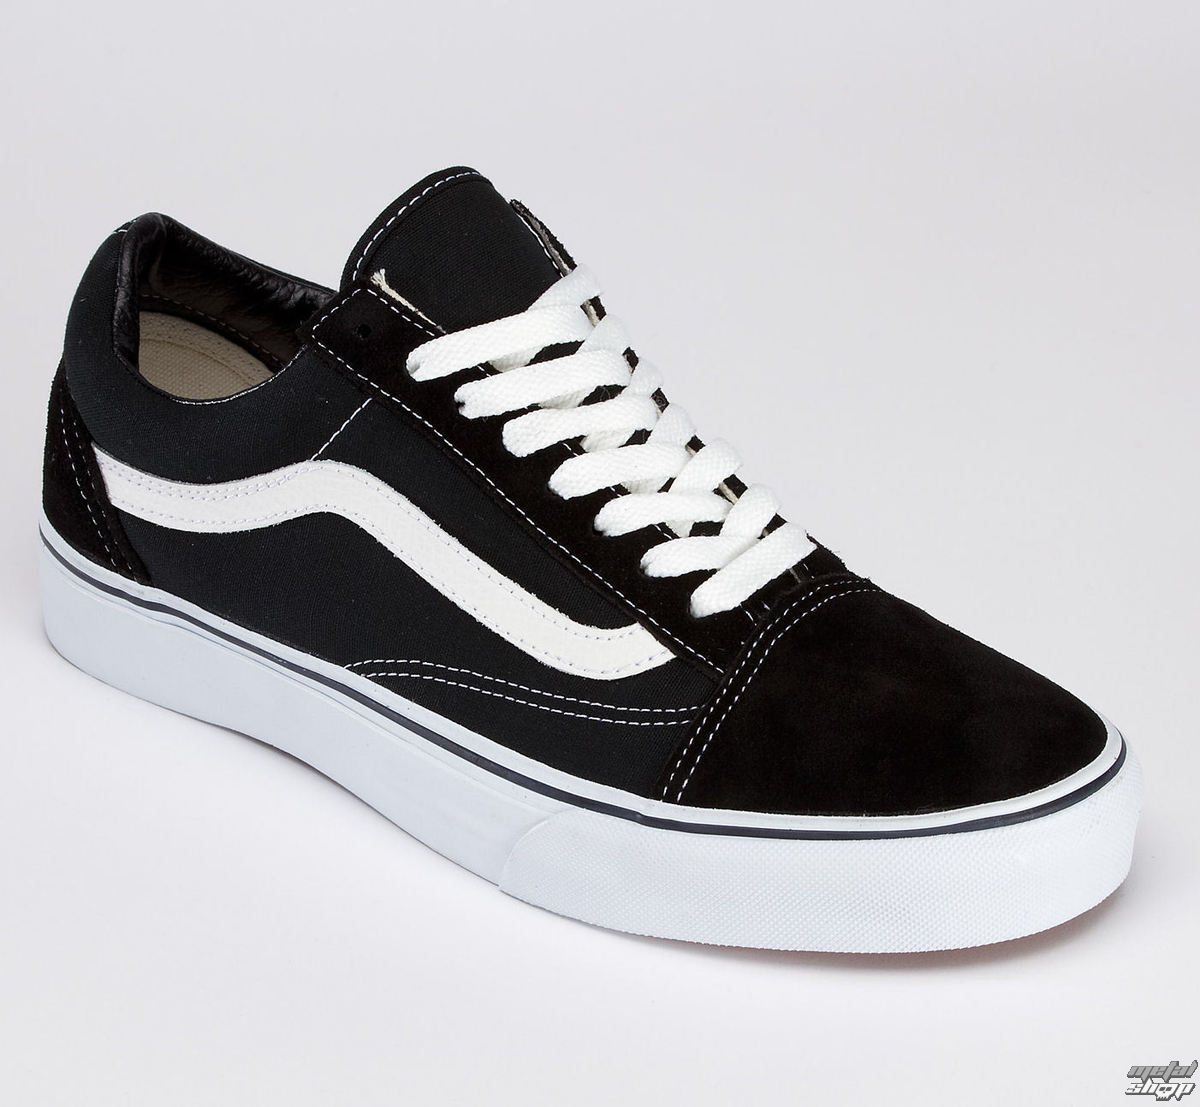 boty VANS - Old Skool - Black/White - VD3HY28